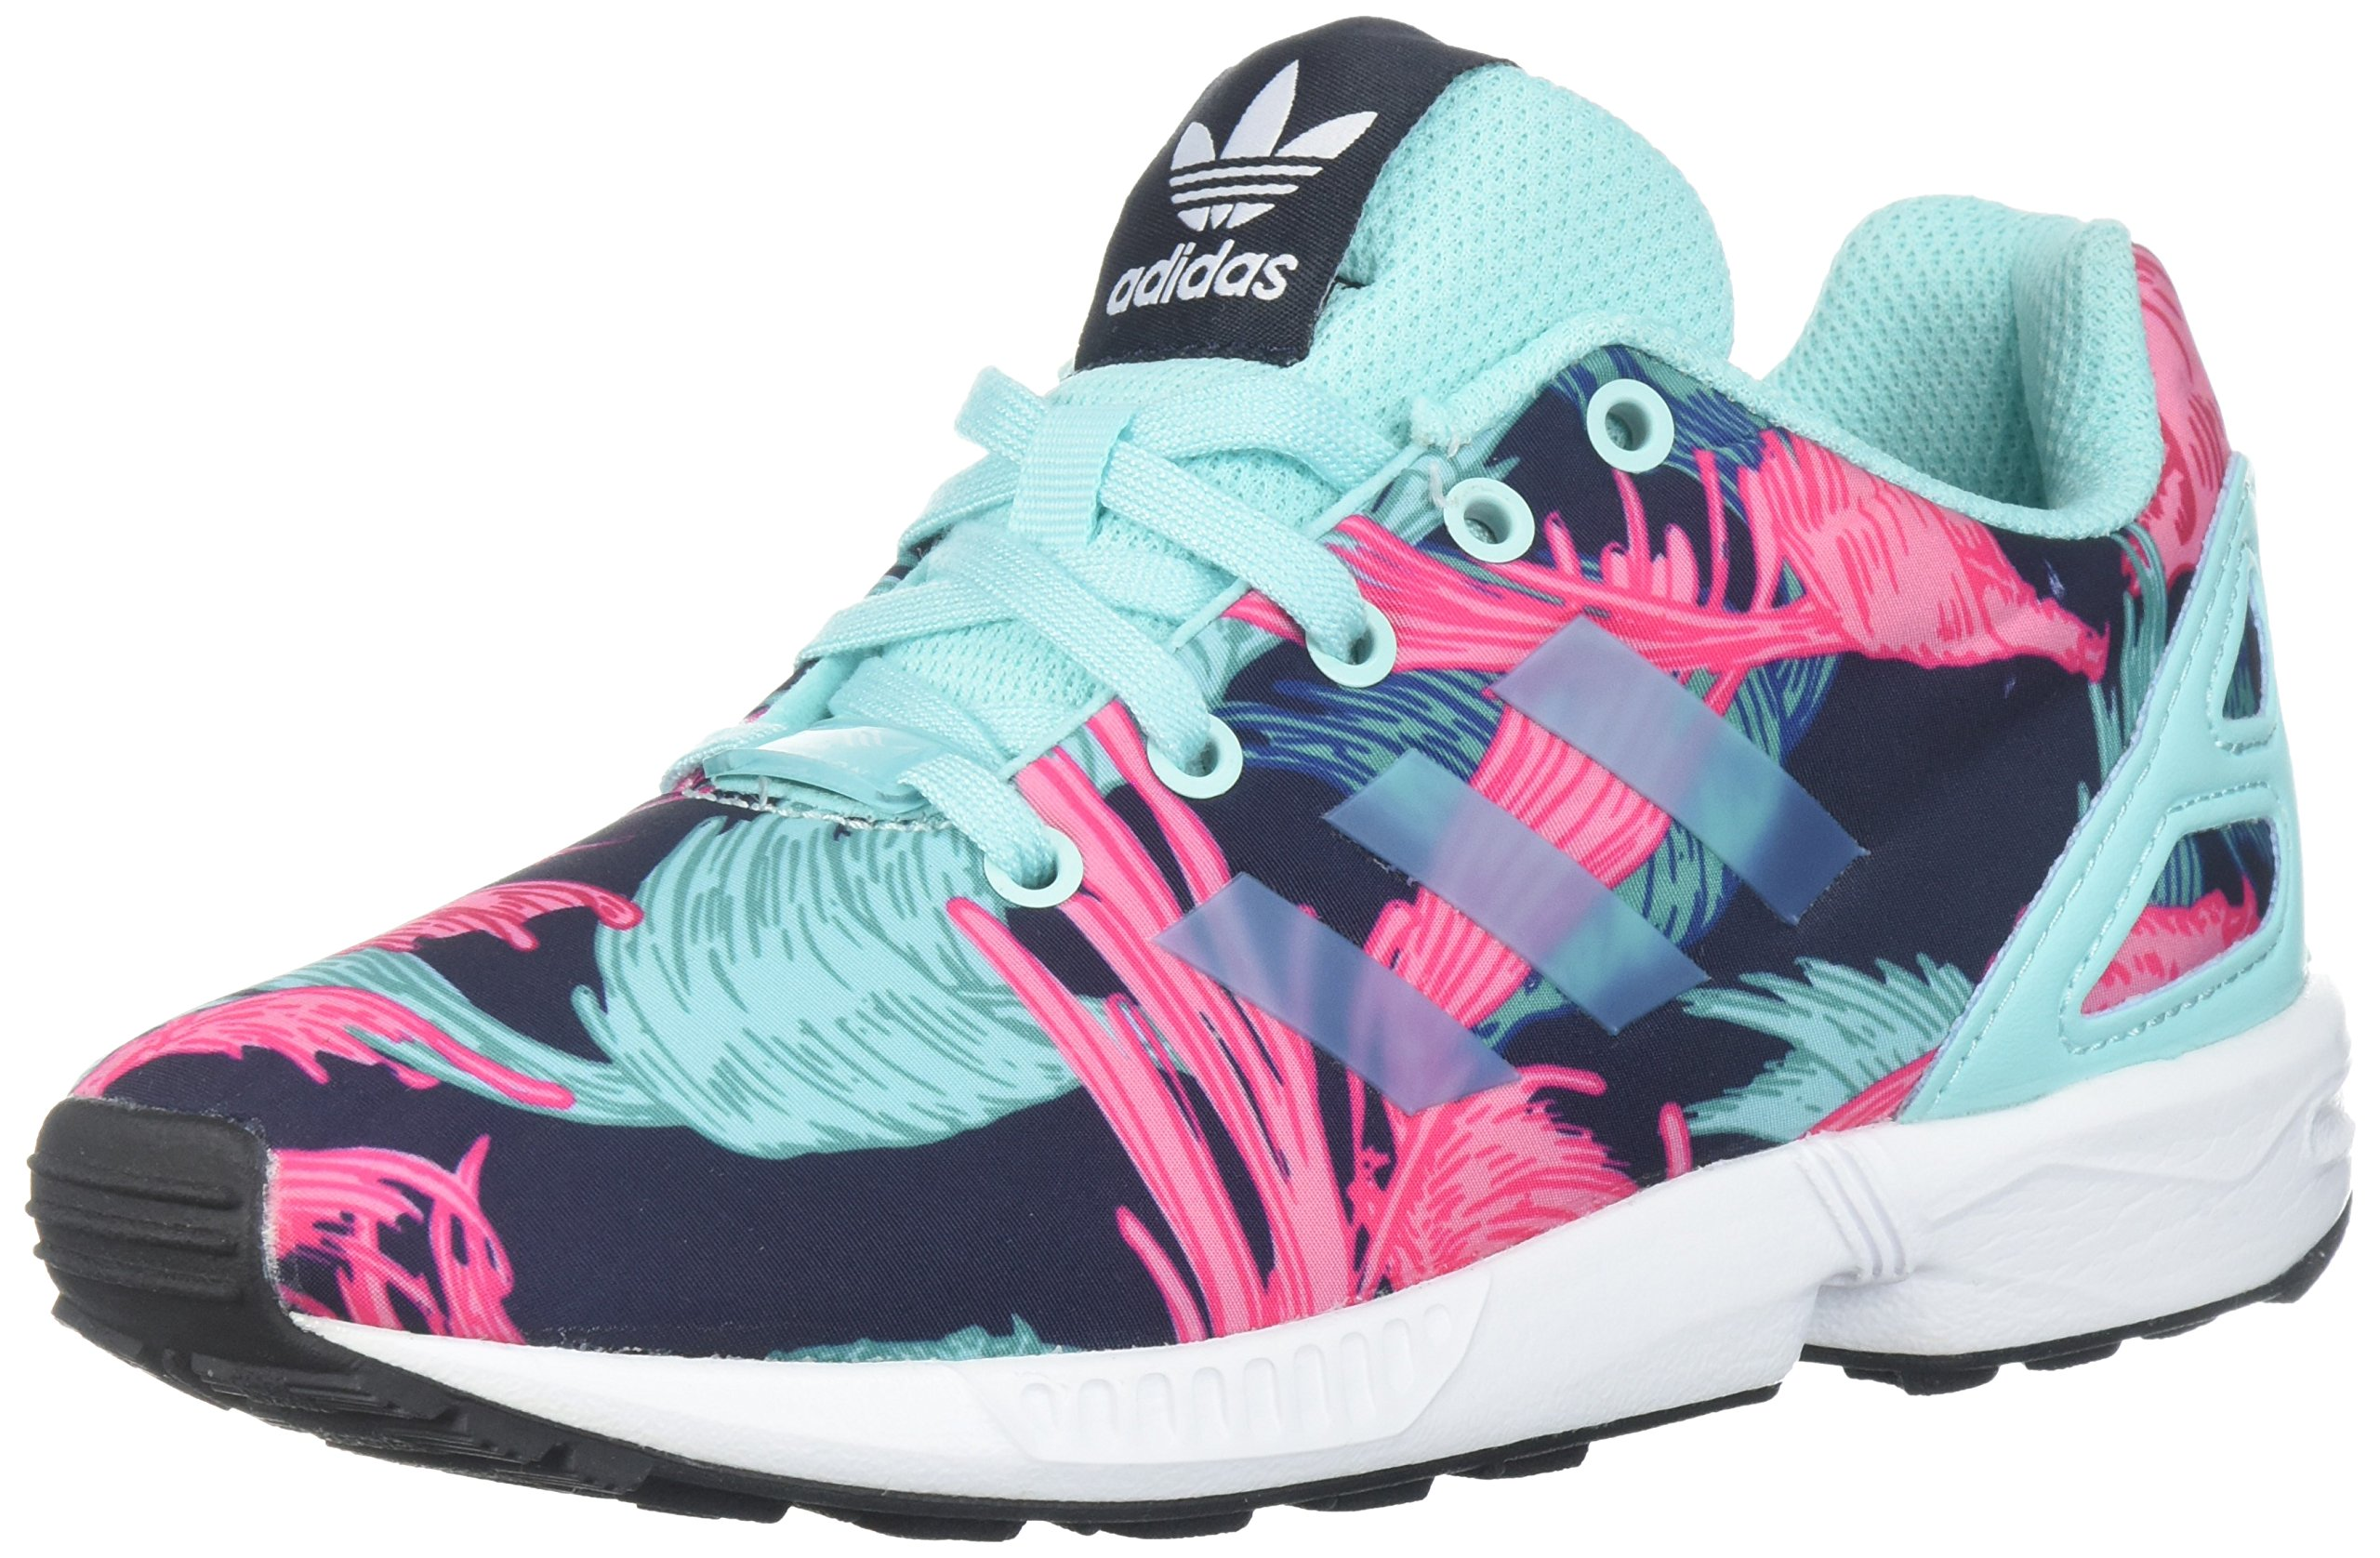 sports shoes ab3b2 b617f adidas Originals Girls' ZX Flux C Running Shoe, Energy Aqua/White, 12  Medium US Little Kid